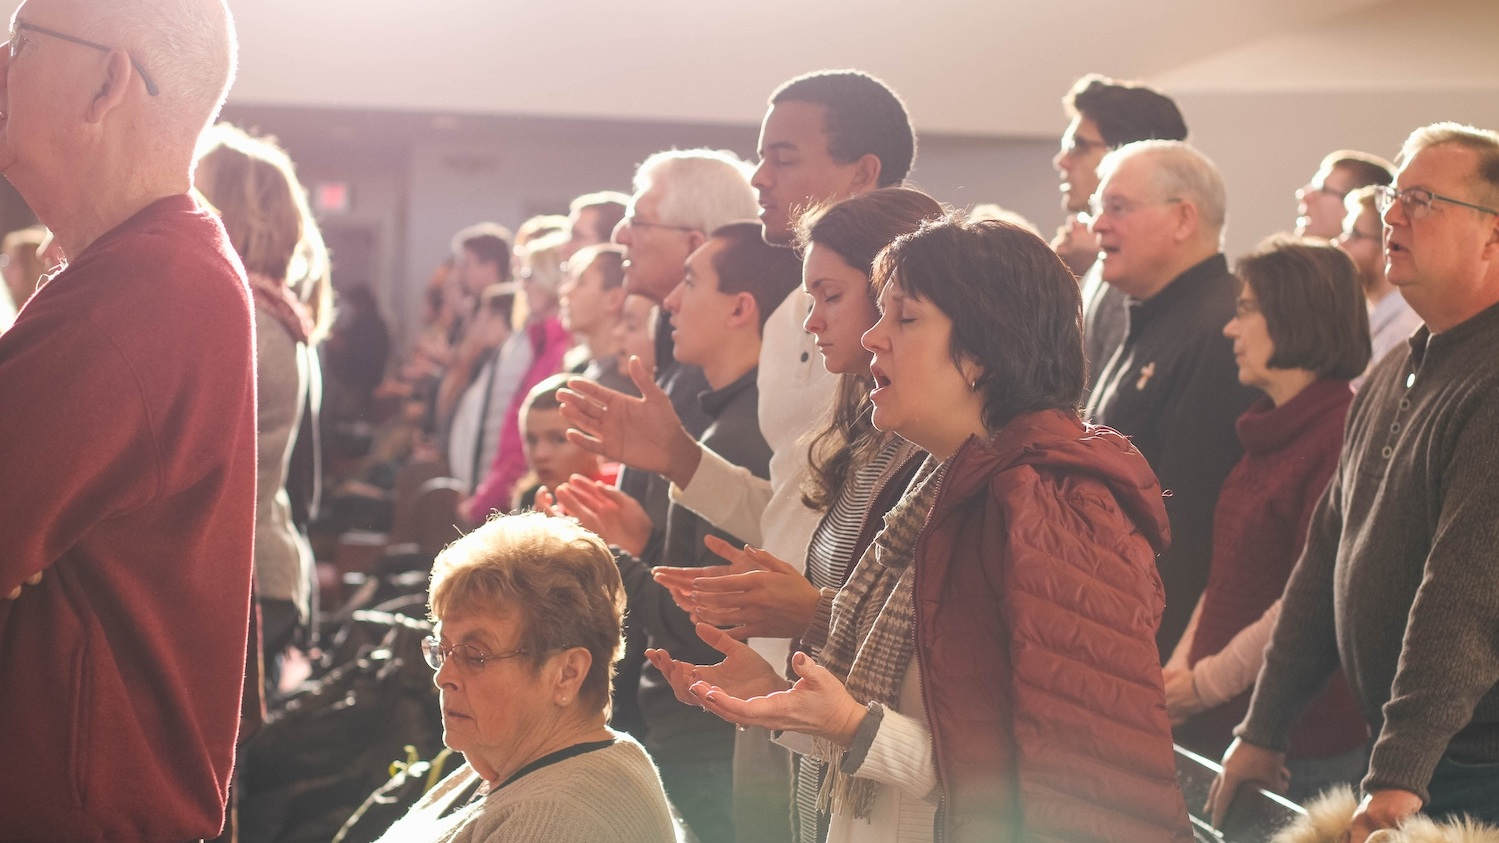 People worshipping and singing in a church